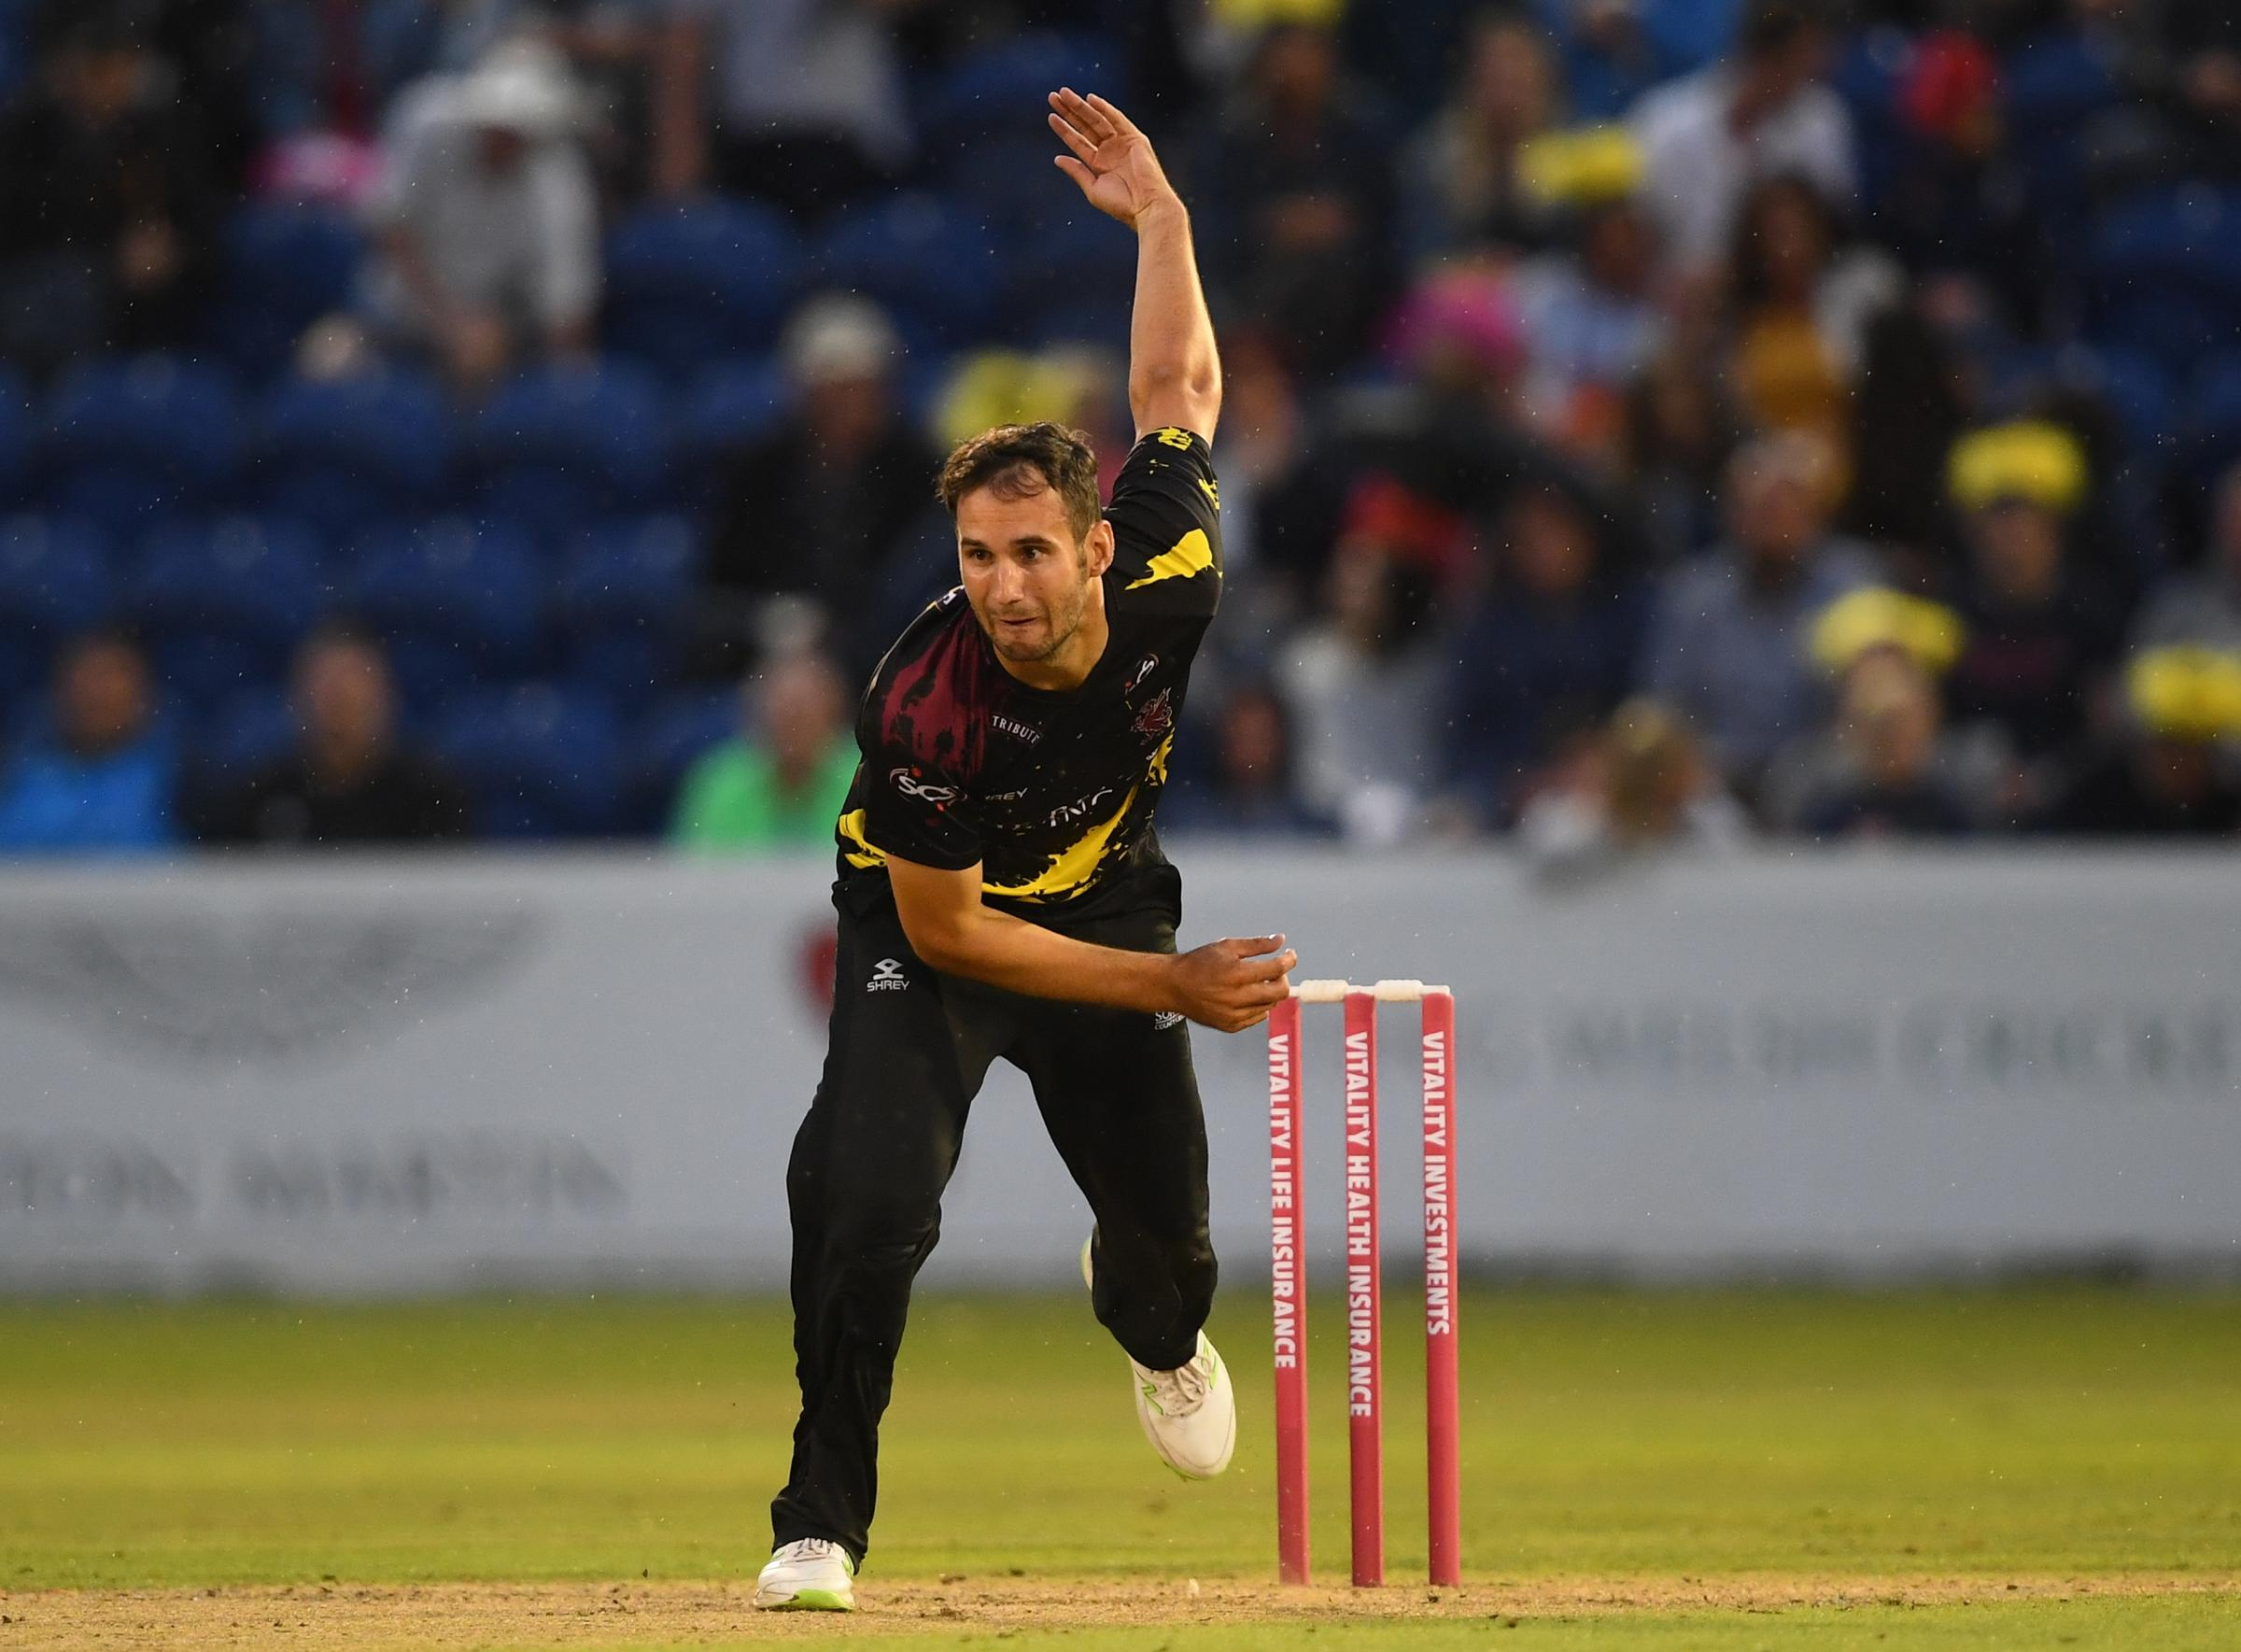 MISSING OUT: Lewis Gregory was among several Somerset players overlooked in the PSL auction. Pic: Alex Davidson/SCCC